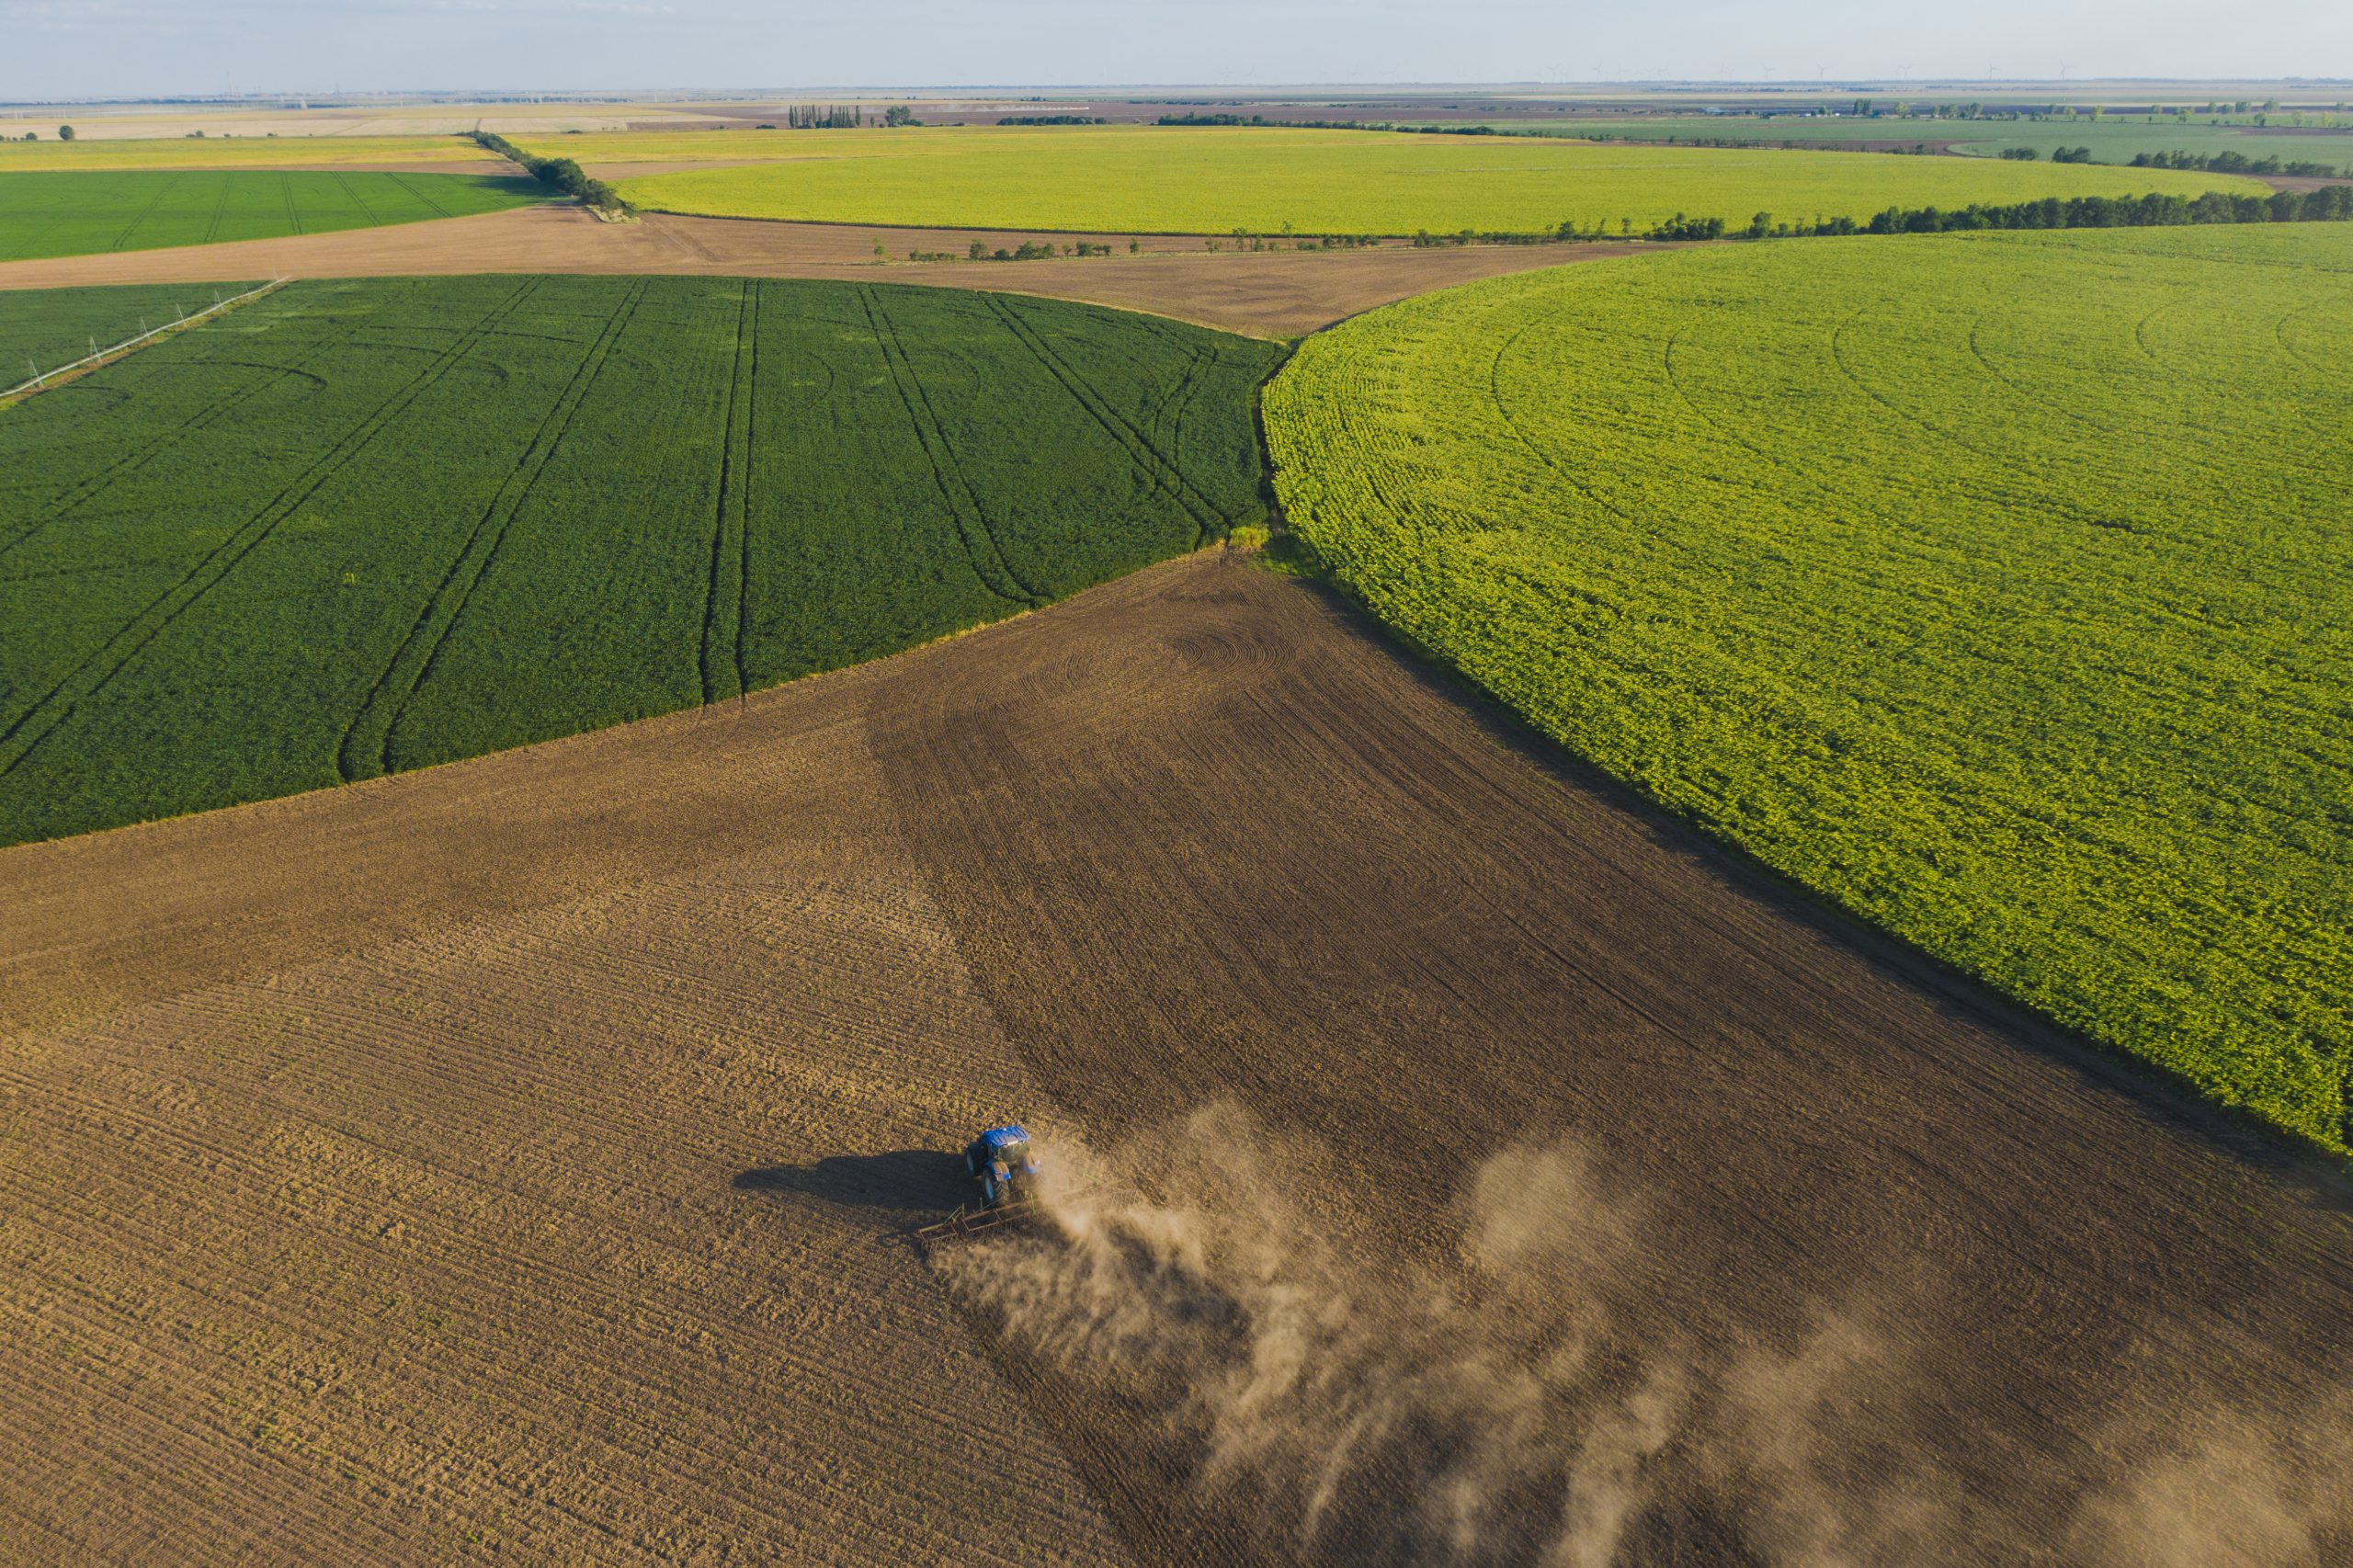 Aerial view of tractor on agriculture field